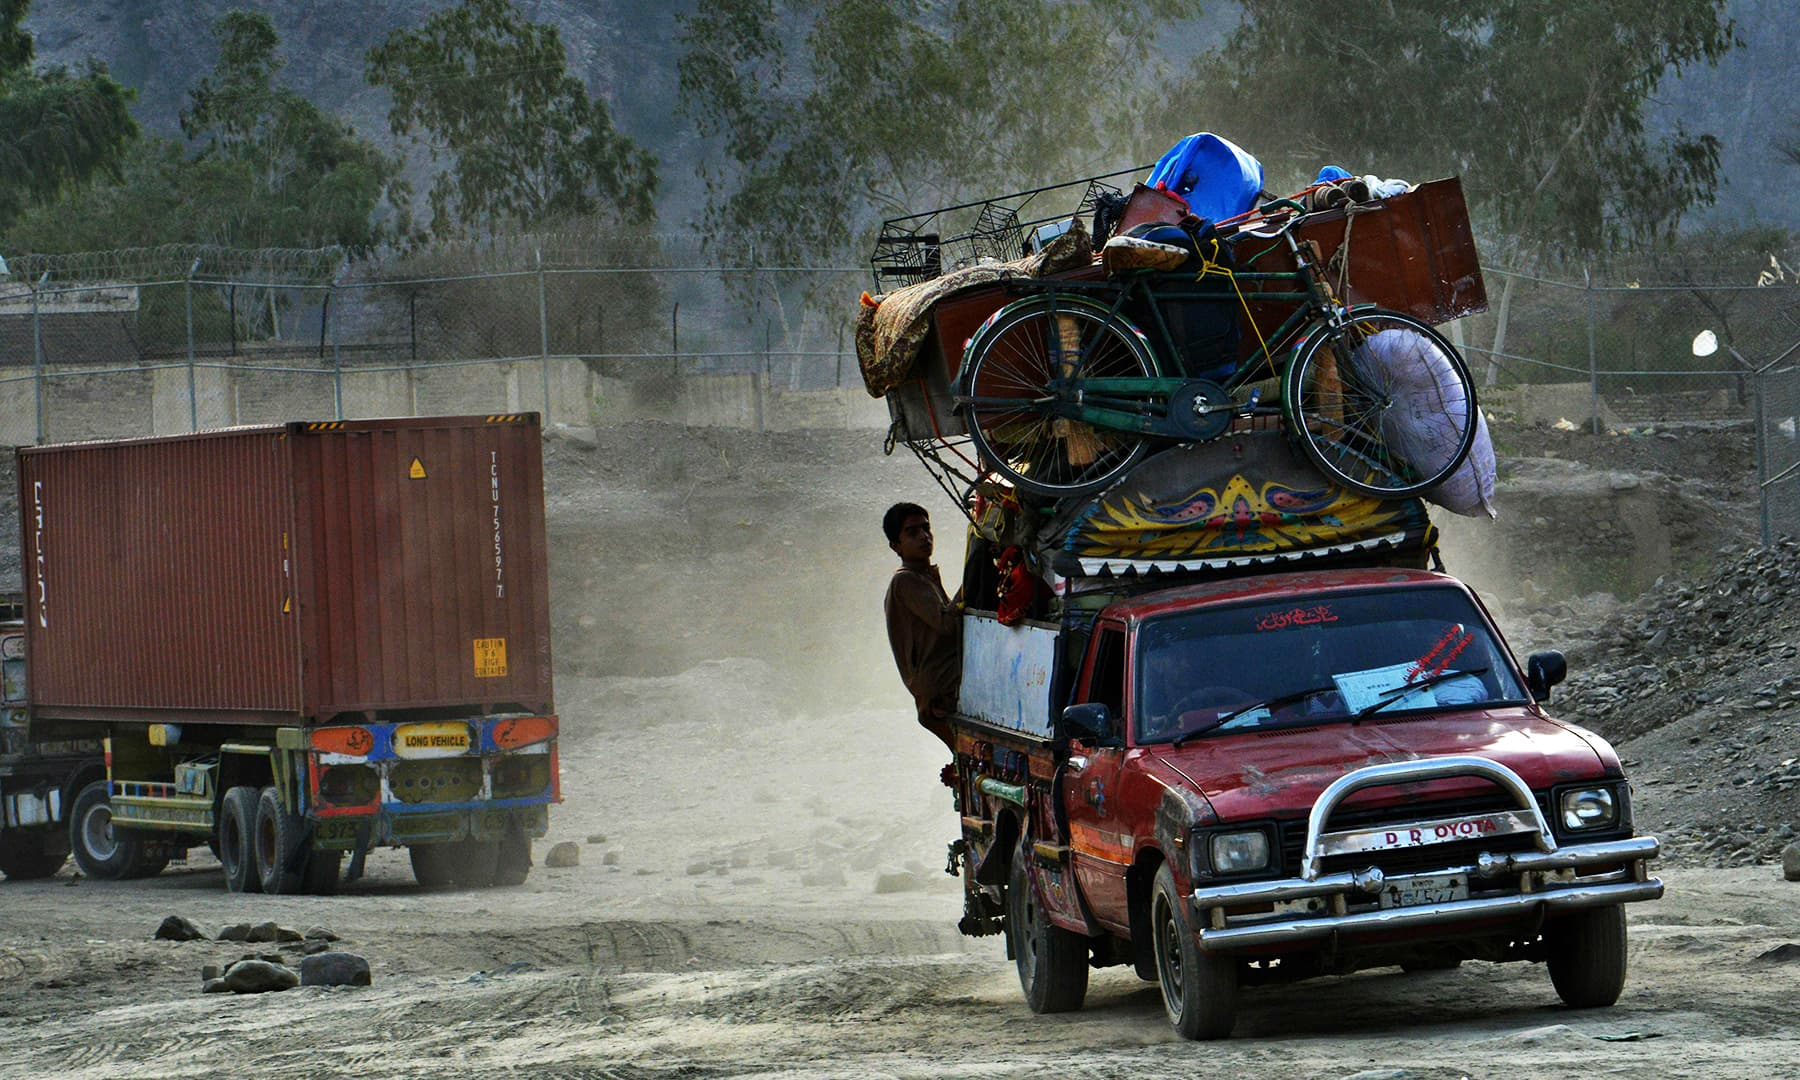 Afghan refugees travelling in a loaded vehicle as they arrive to cross the border into Afghanistan, at the Torkham crossing point in Pakistan's tribal Khyber district. — AFP